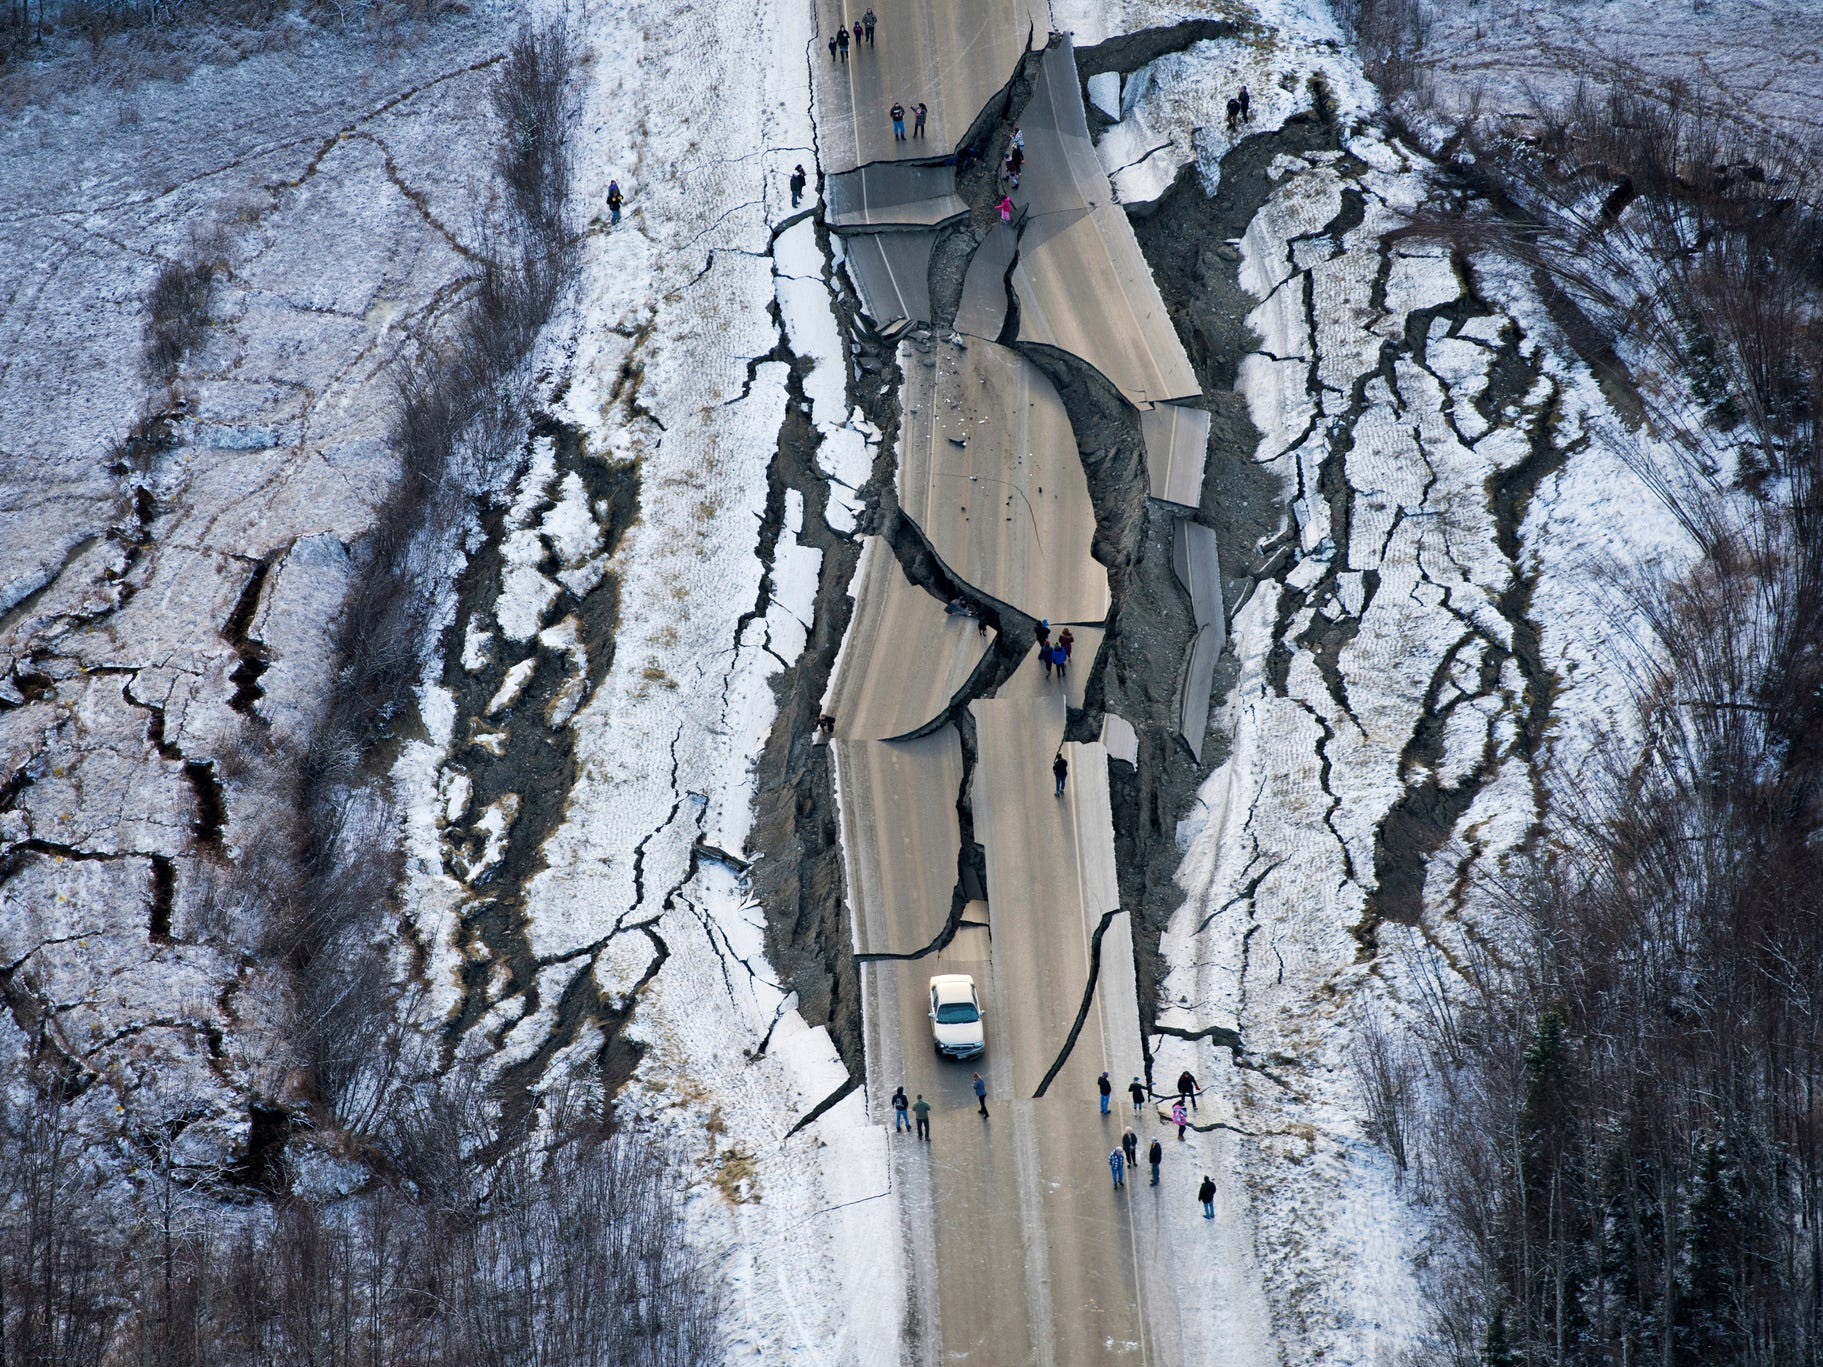 This aerial photo shows damage on Vine Road, south of Wasilla, Alaska, after earthquakes Friday, Nov. 30, 2018. Back-to-back earthquakes measuring 7.0 and 5.7 shattered highways and rocked buildings Friday in Anchorage and the surrounding area, sending people running into the streets and briefly triggering a tsunami warning for islands and coastal areas south of the city.